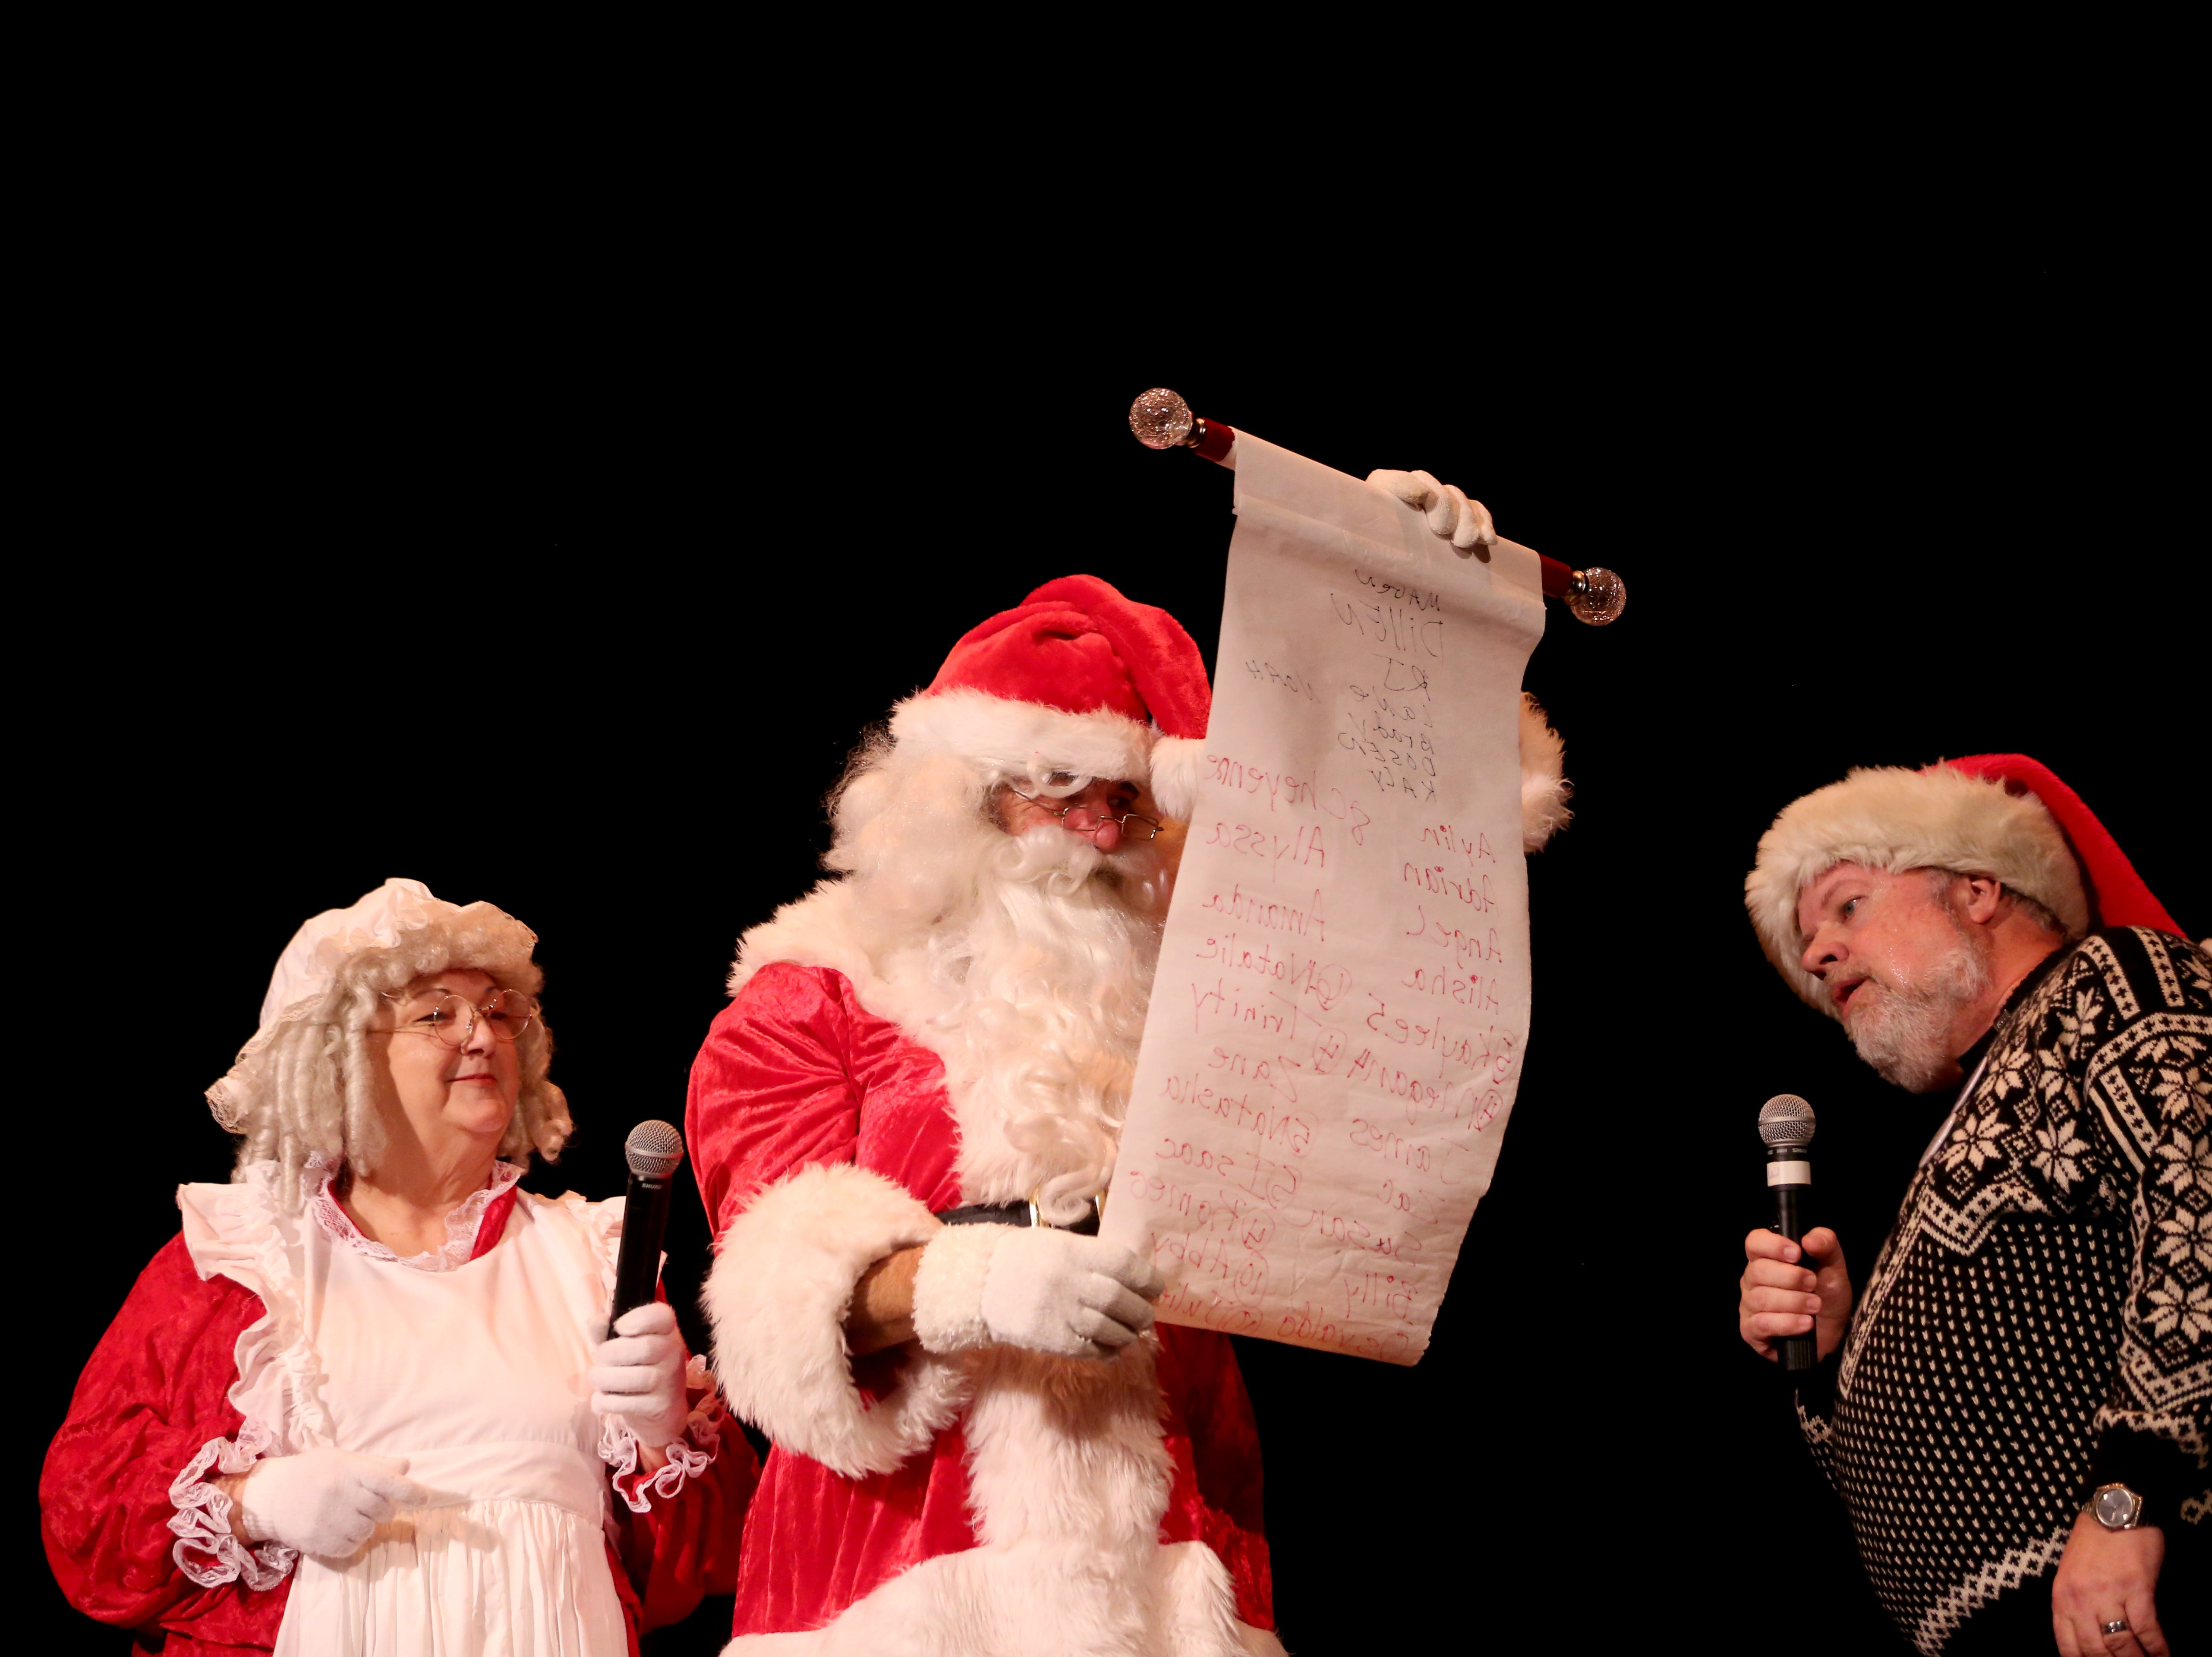 Santa Claus and Mrs. Claus read a list of good names at the 78th annual children's holiday party at the Elsinore Theatre on Saturday, Dec. 1, 2018. The party included holiday music and a visit from Santa.